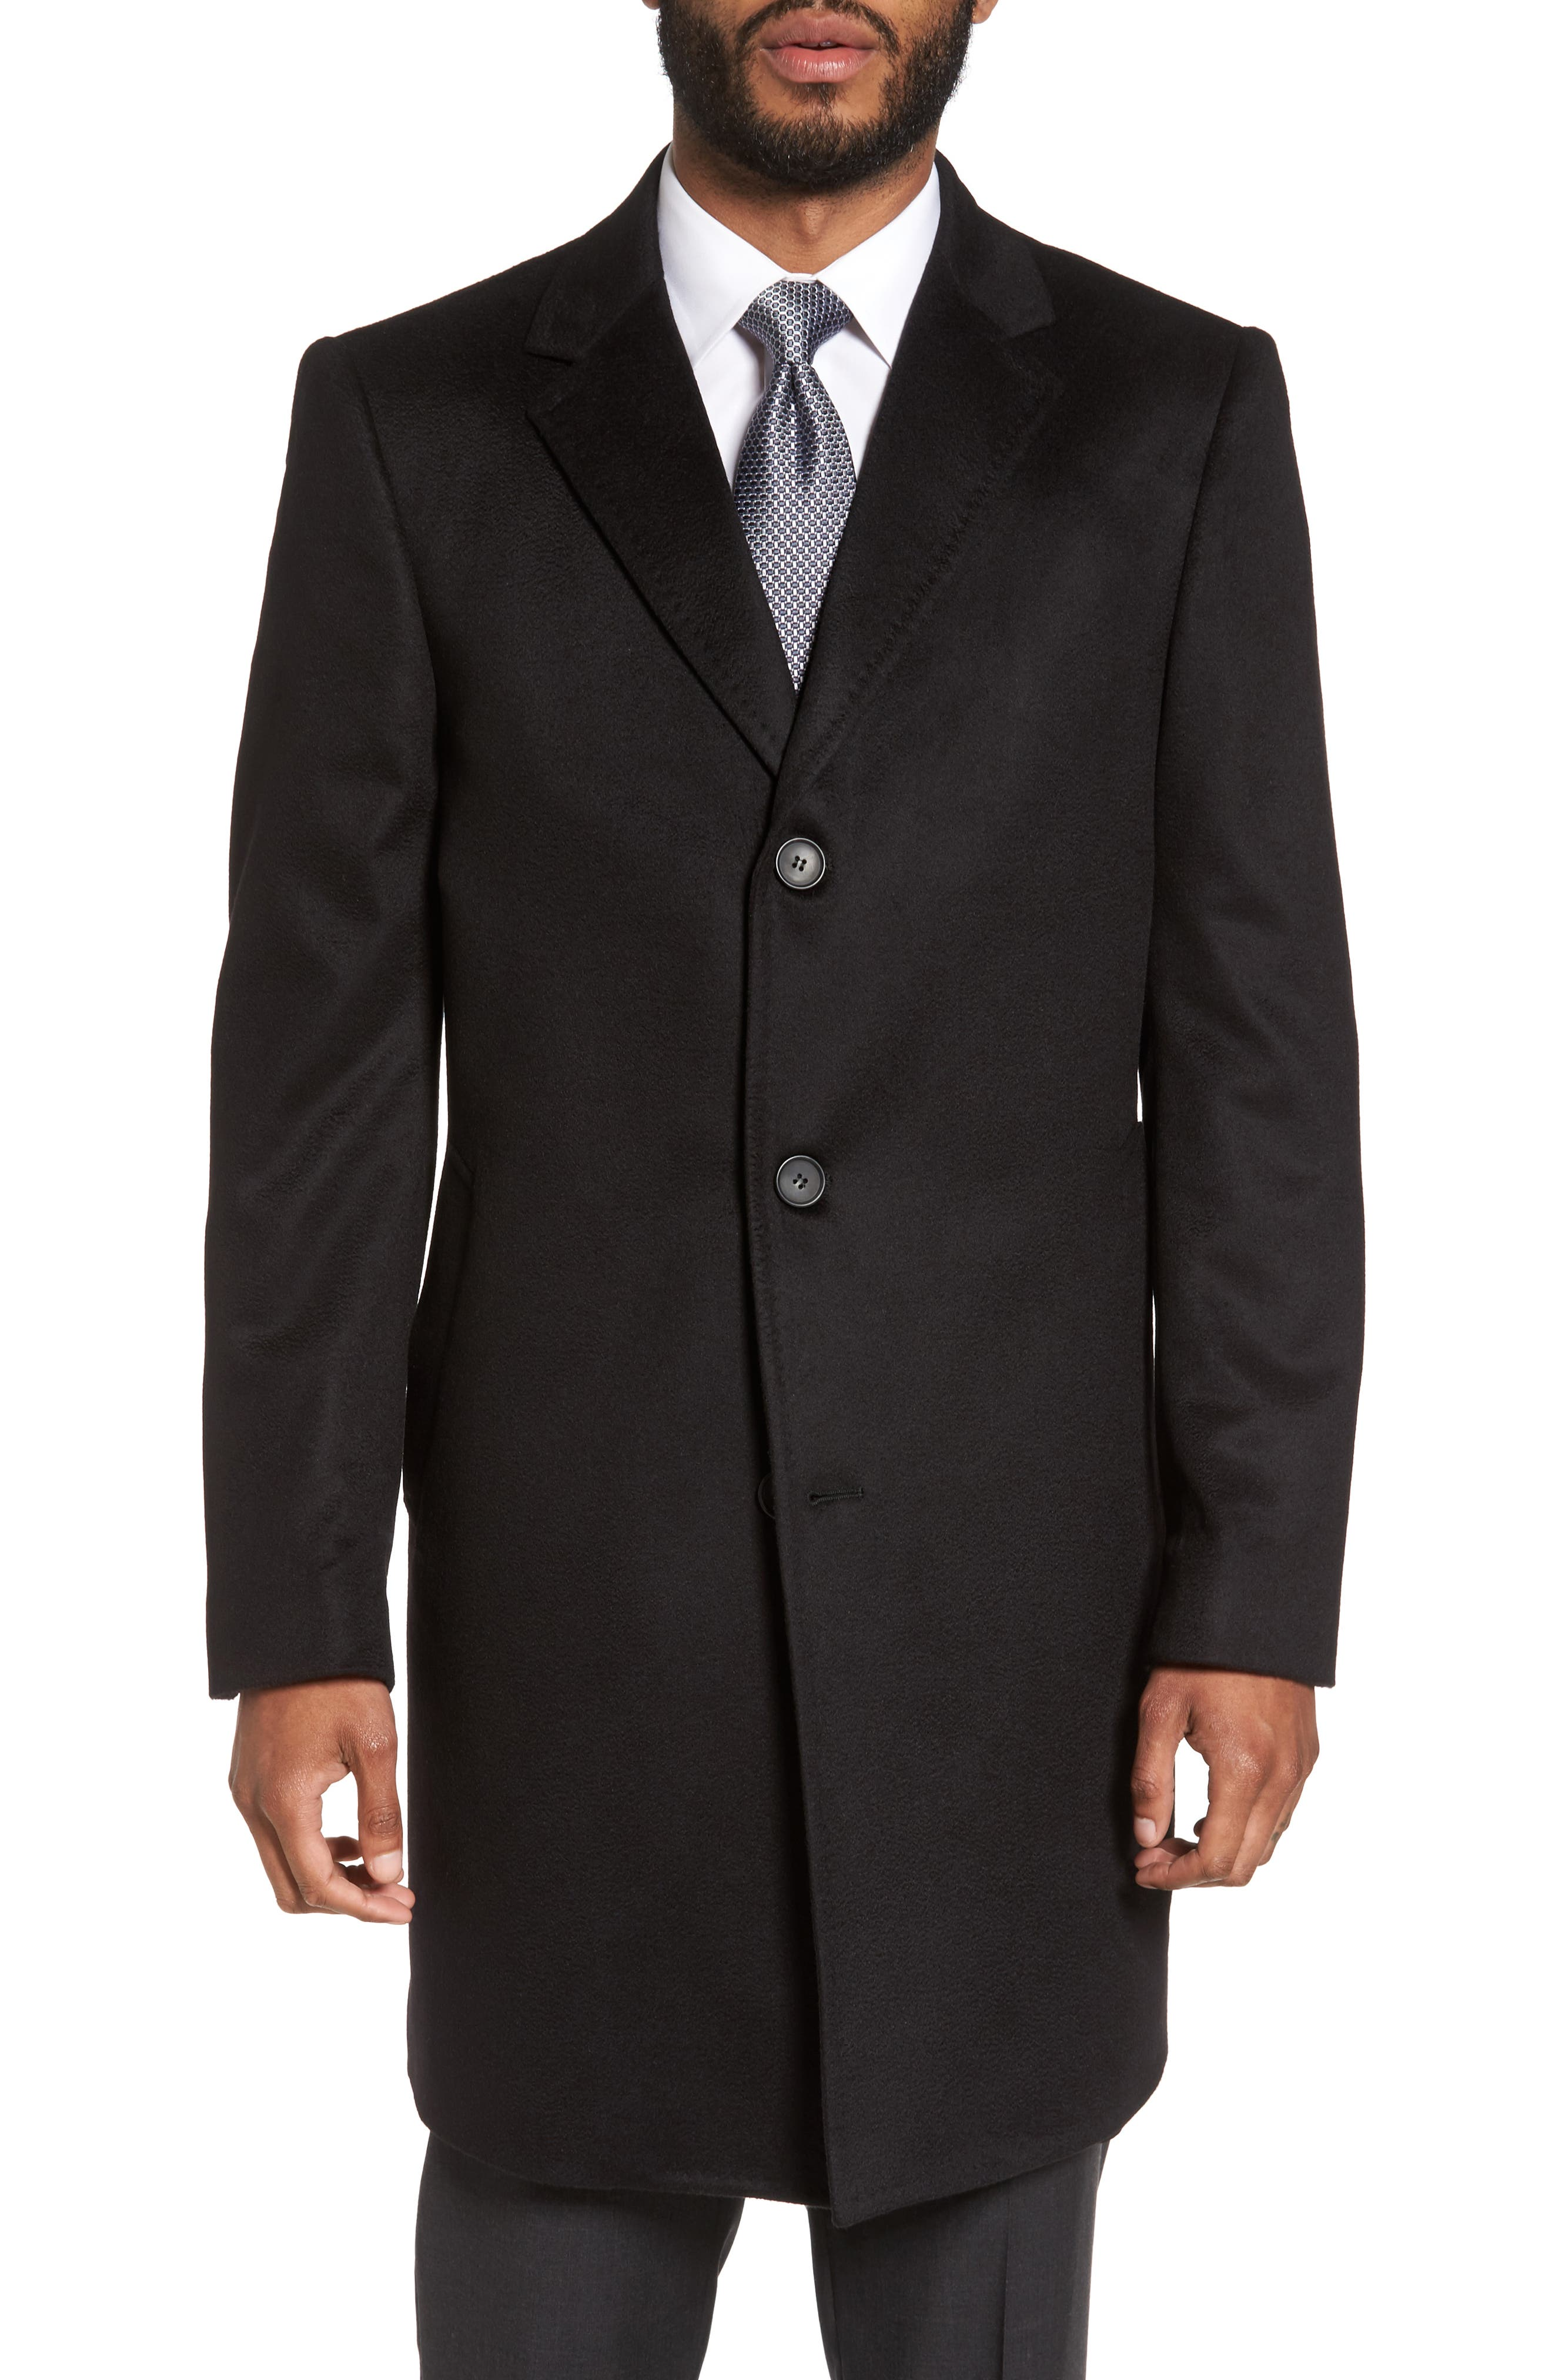 Carter Classic Fit Cashmere Overcoat,                             Main thumbnail 1, color,                             Black